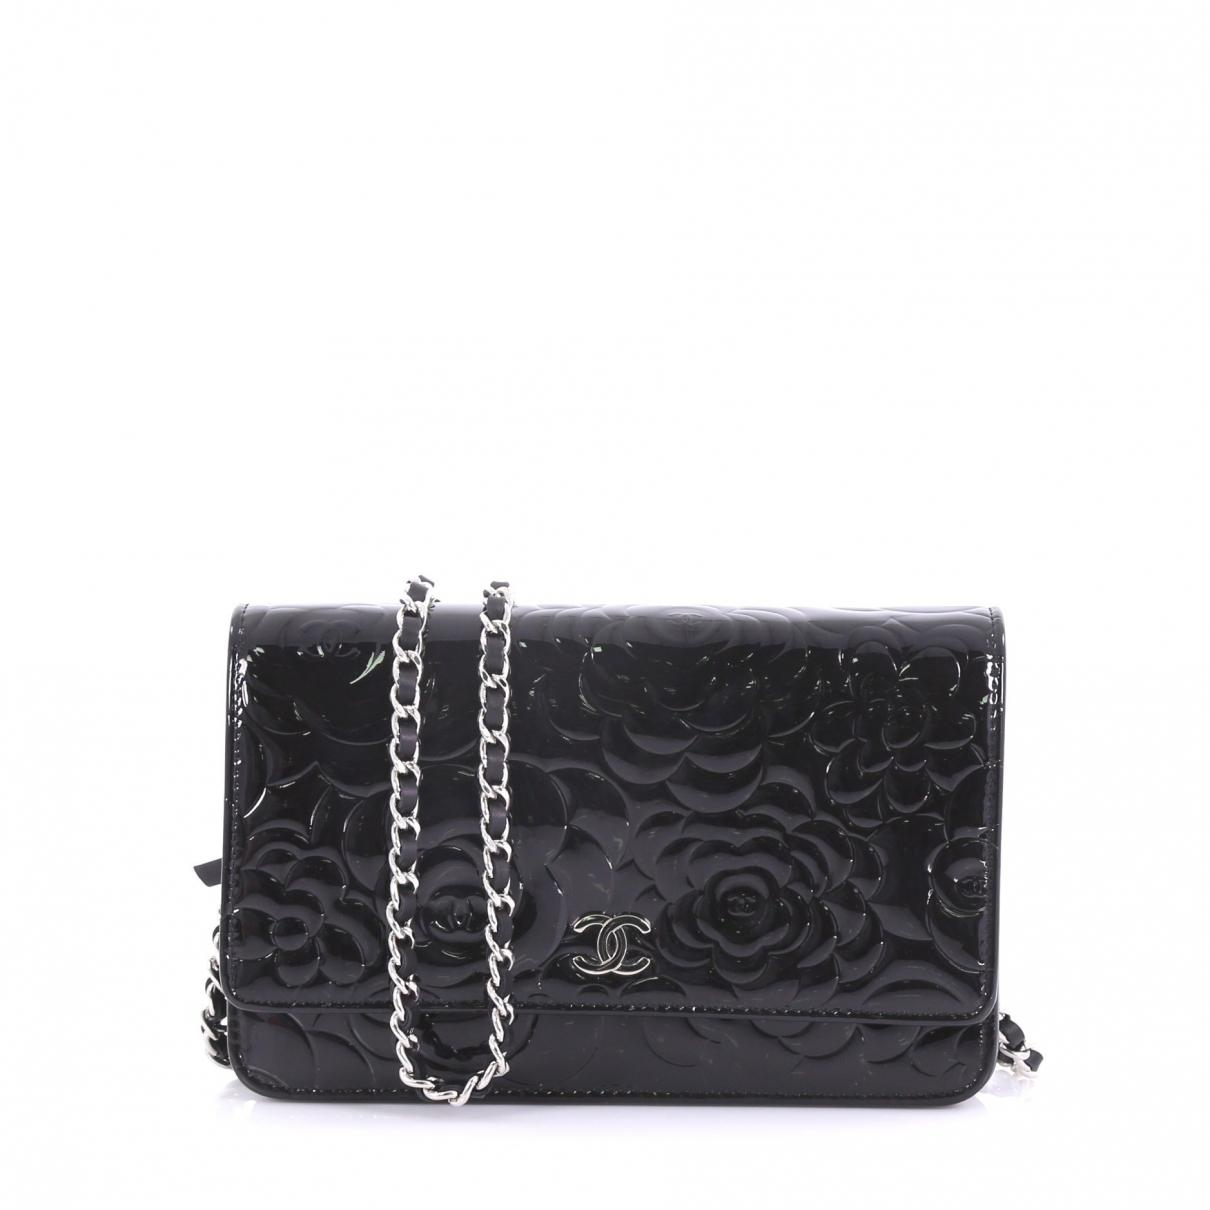 33fd2abc8c8d Lyst - Chanel Wallet On Chain Black Patent Leather Handbag in Black